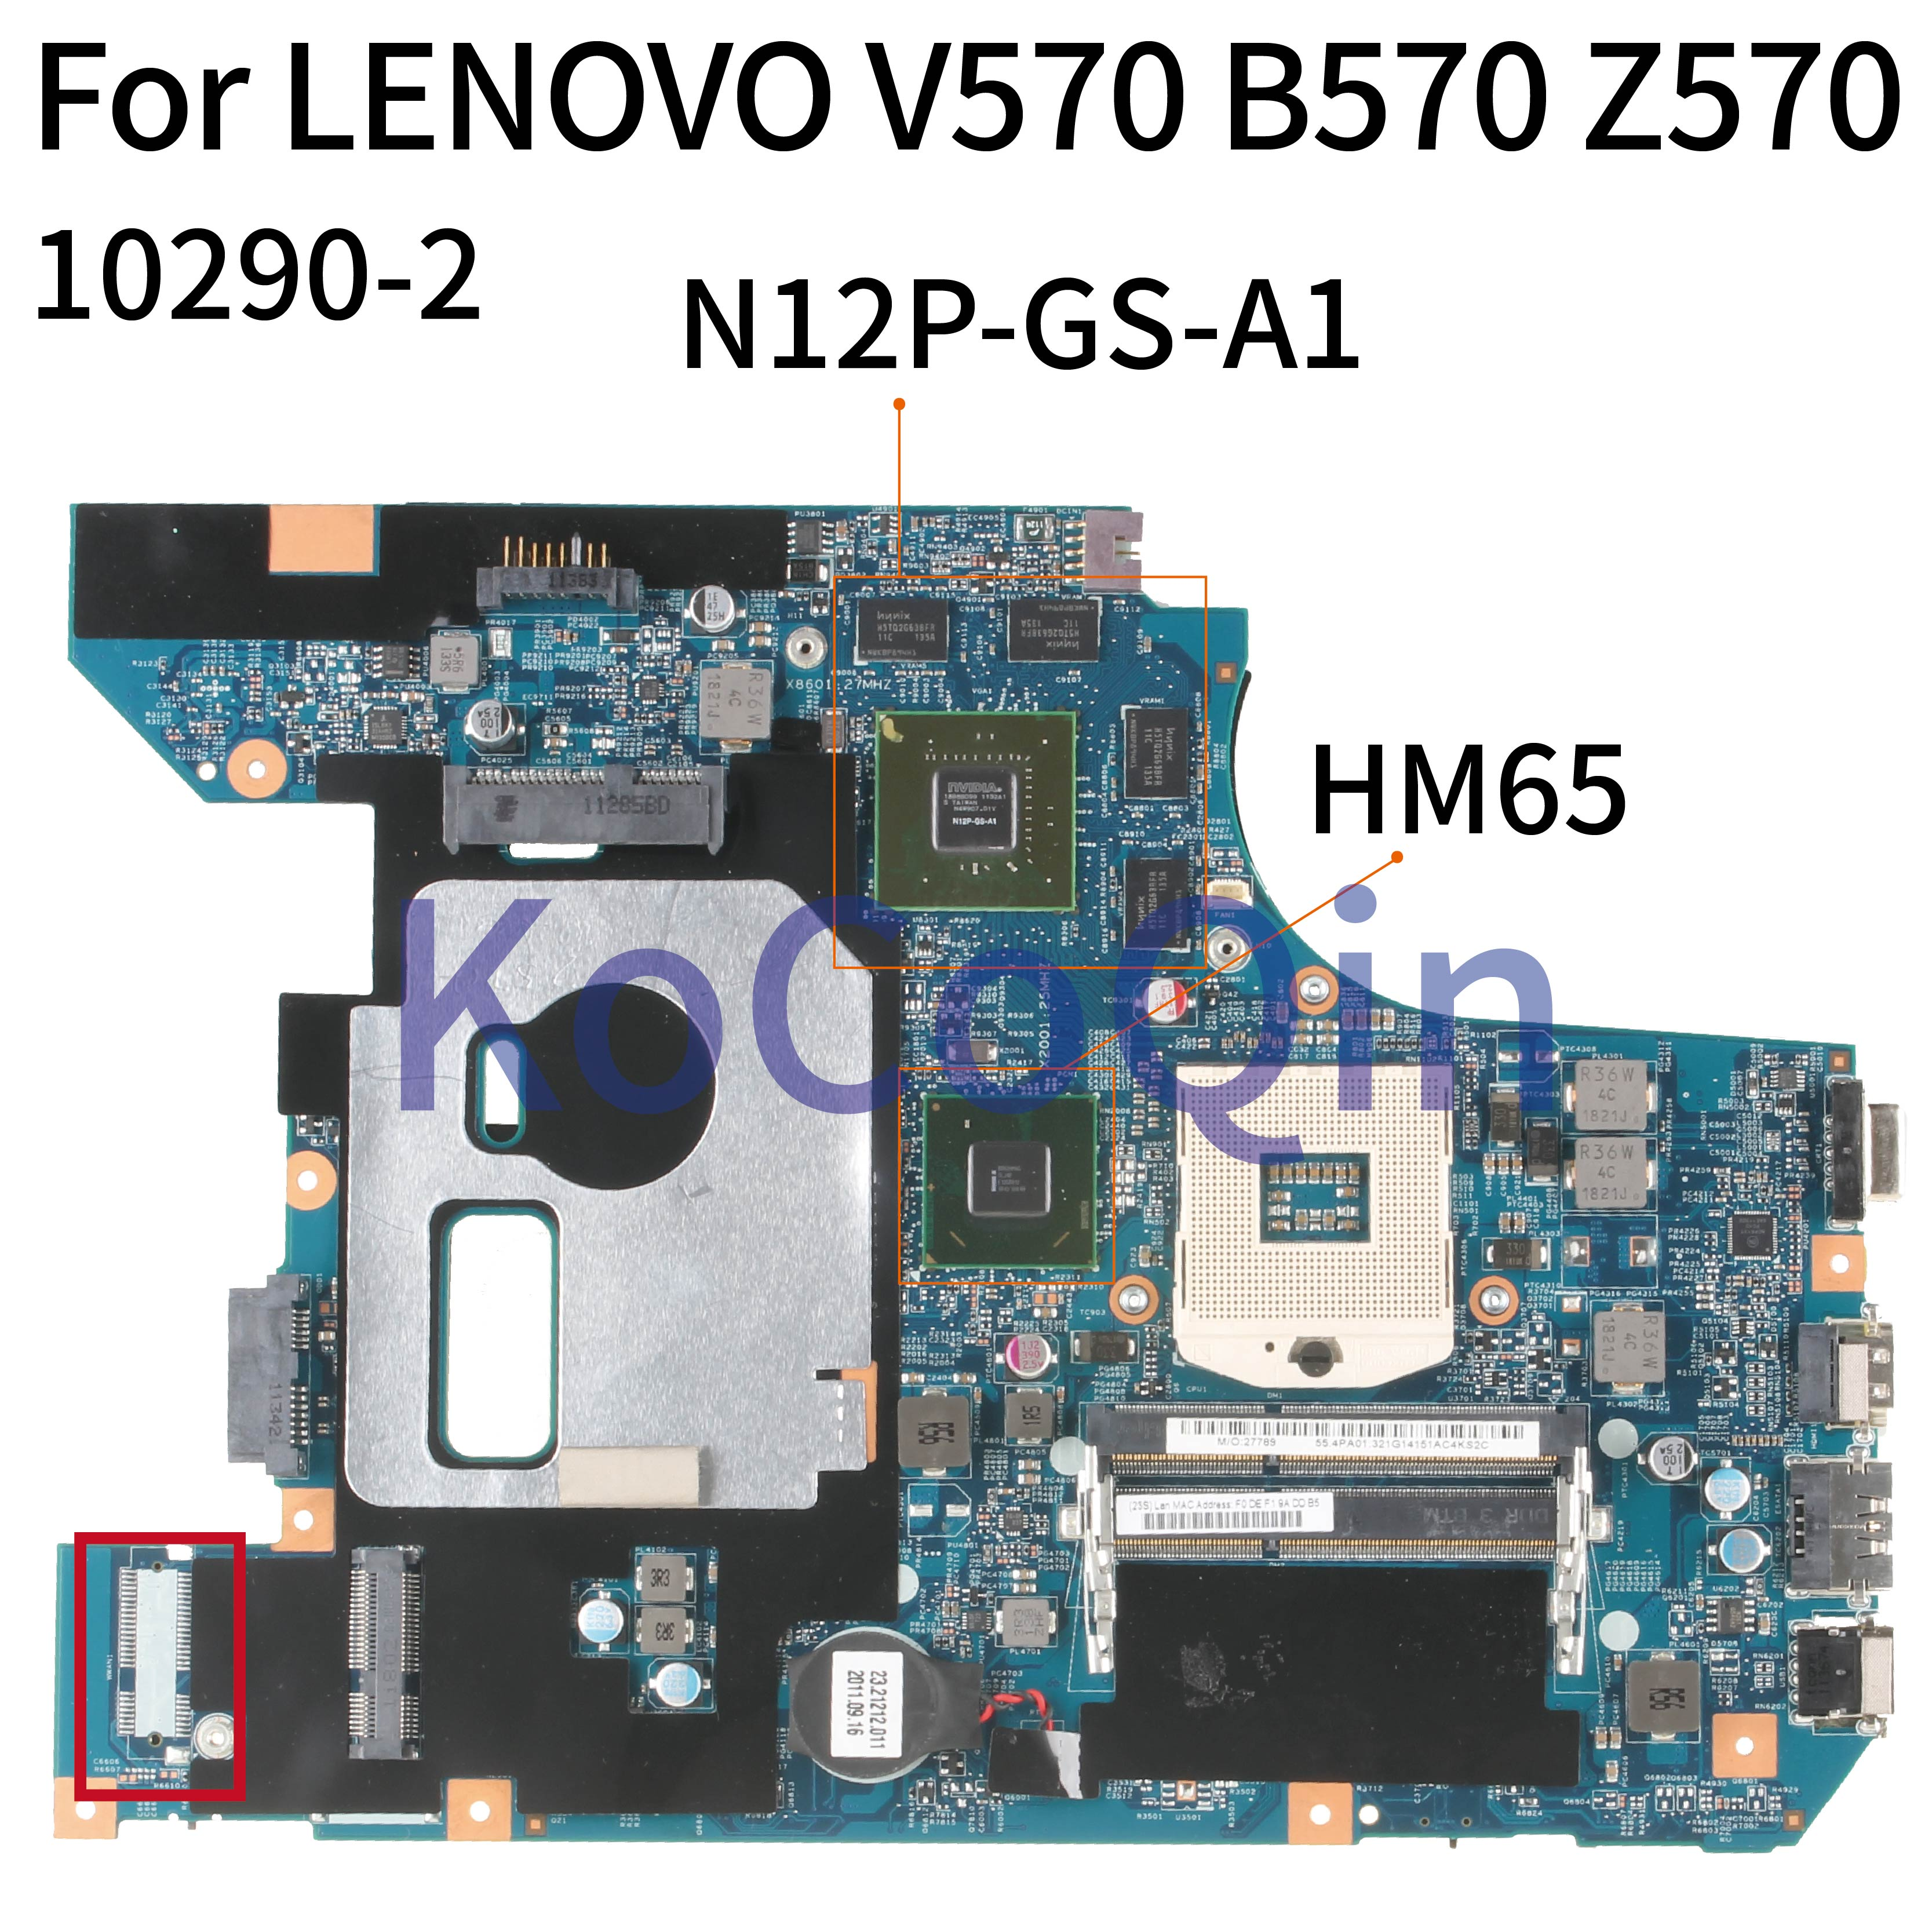 KoCoQin Laptop <font><b>motherboard</b></font> For <font><b>LENOVO</b></font> <font><b>V570</b></font> B570 Z570 HM65 N12P-GS-A1 Mainboard 10290-4 image